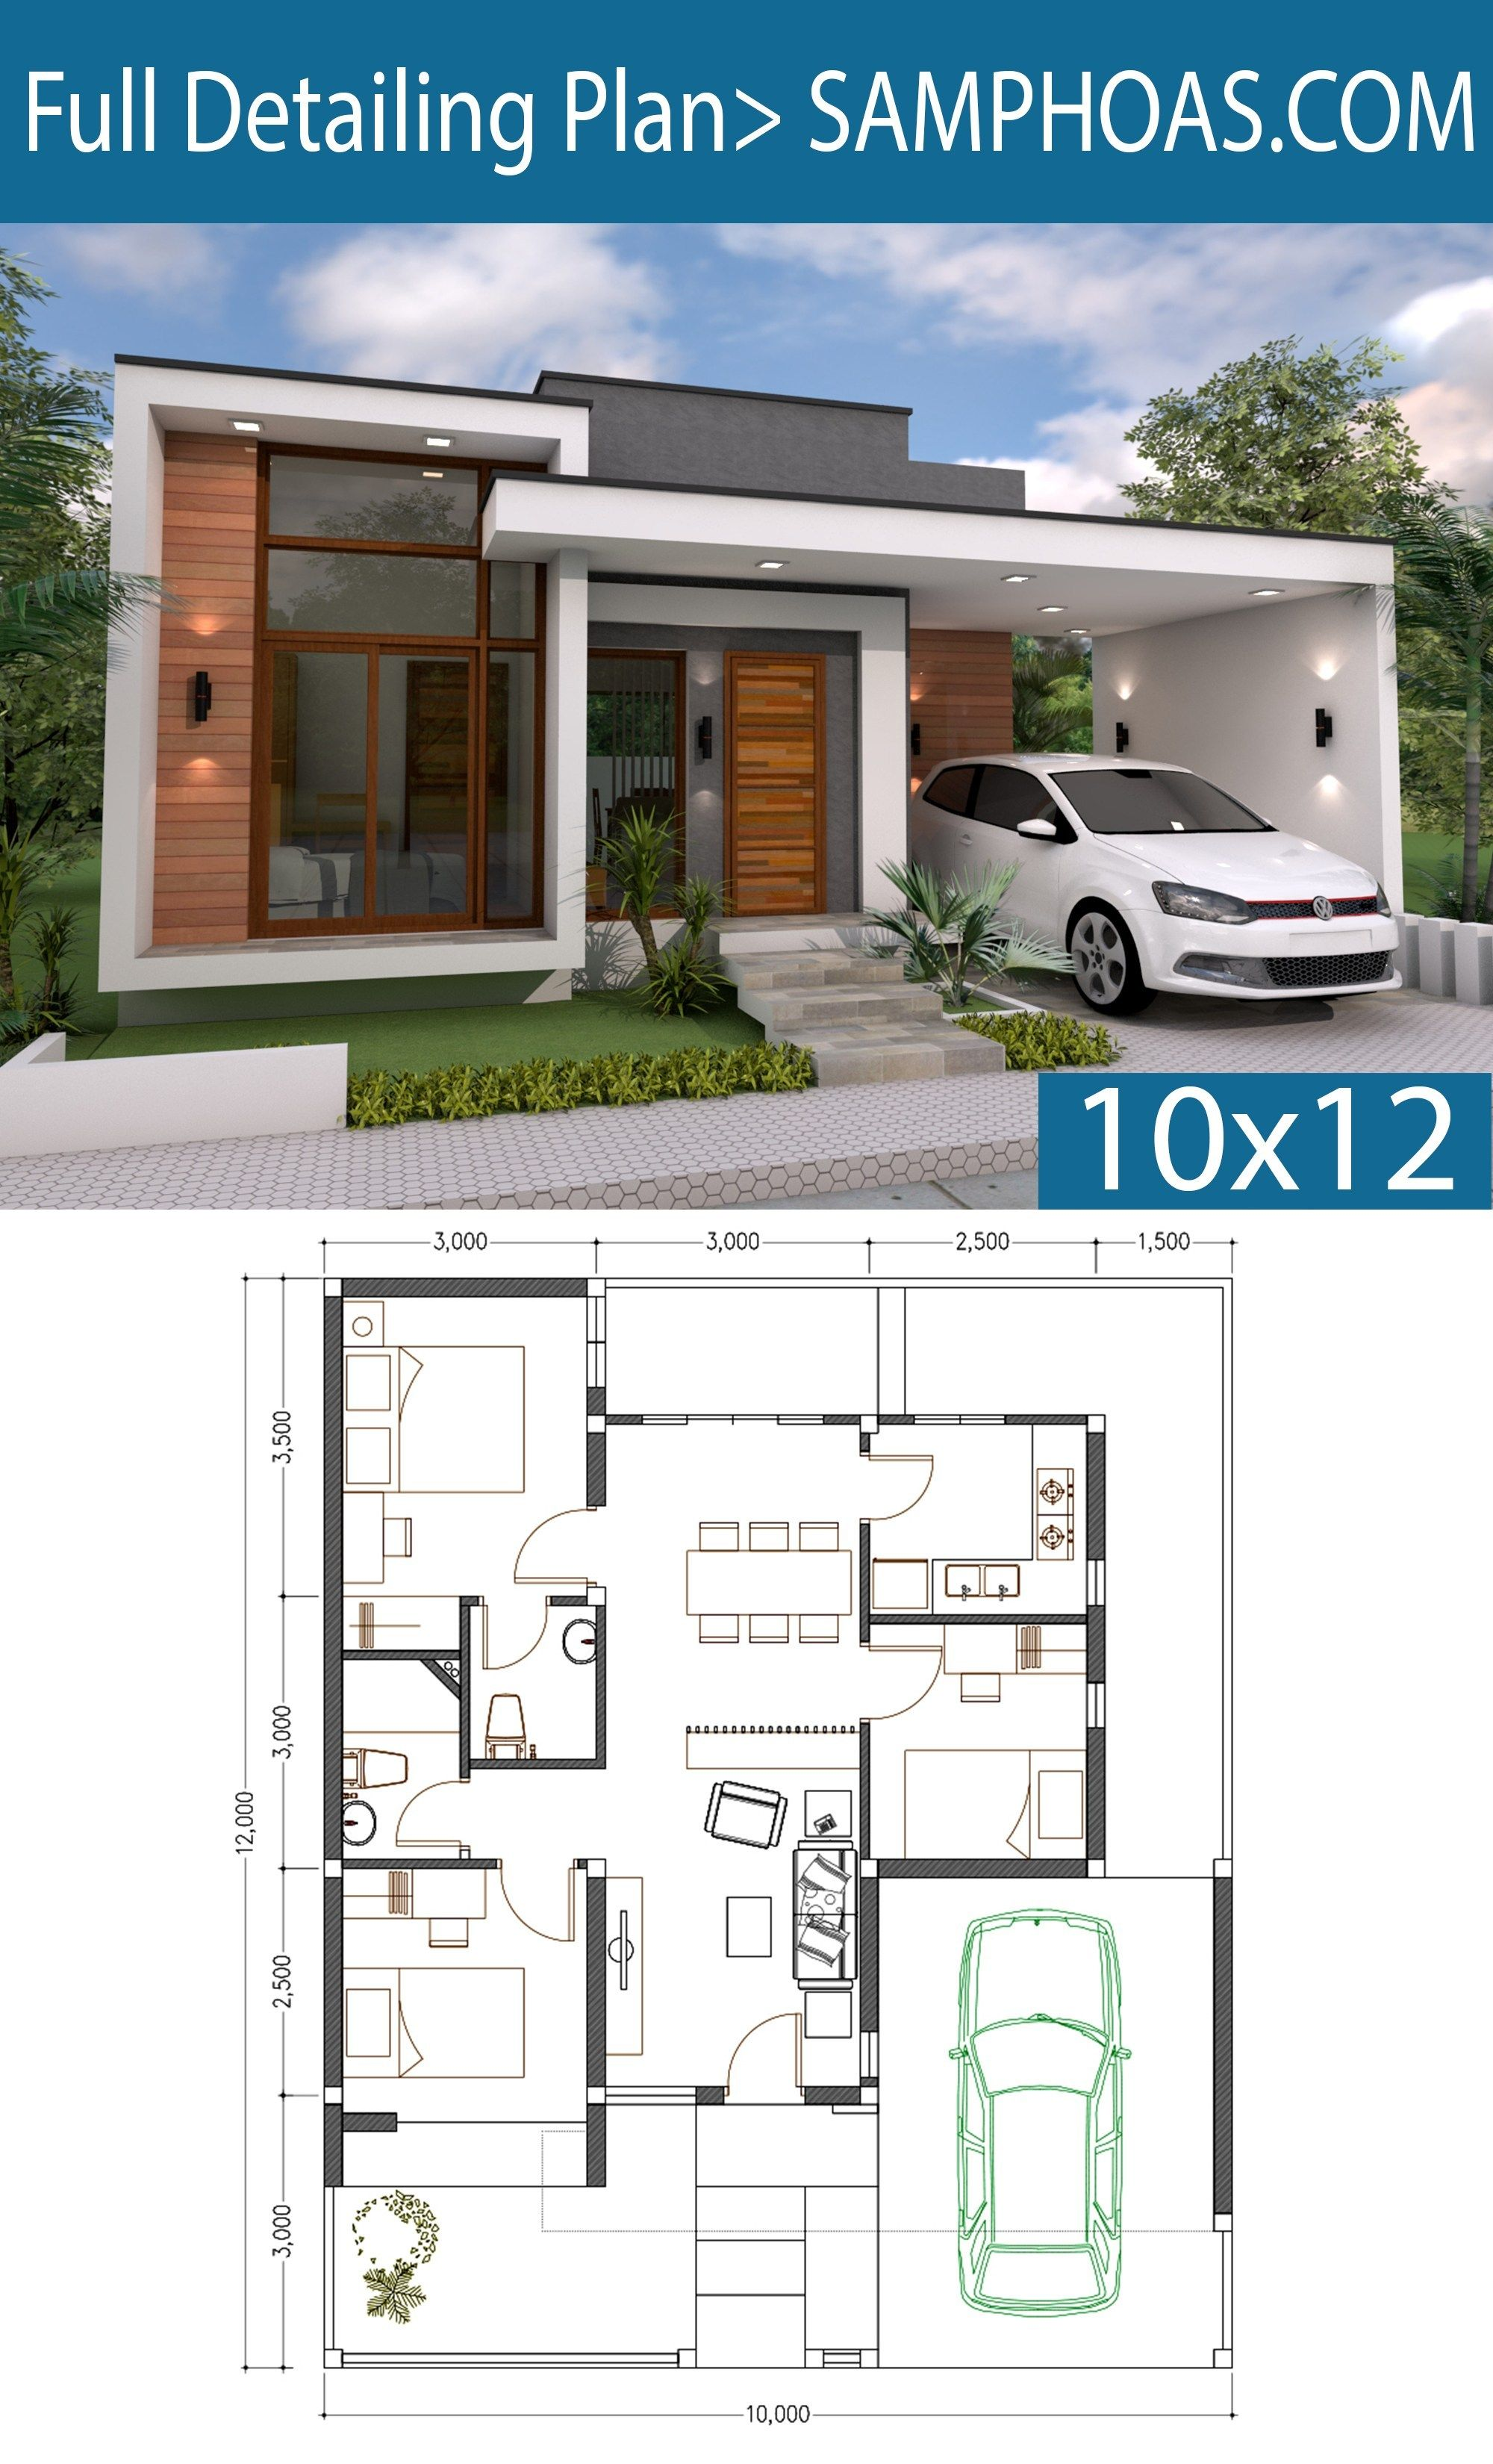 3 Bedrooms Home Design Plan 10x12m Samphoas Plan Bungalow House Plans Modern Style House Plans Modern Bungalow House